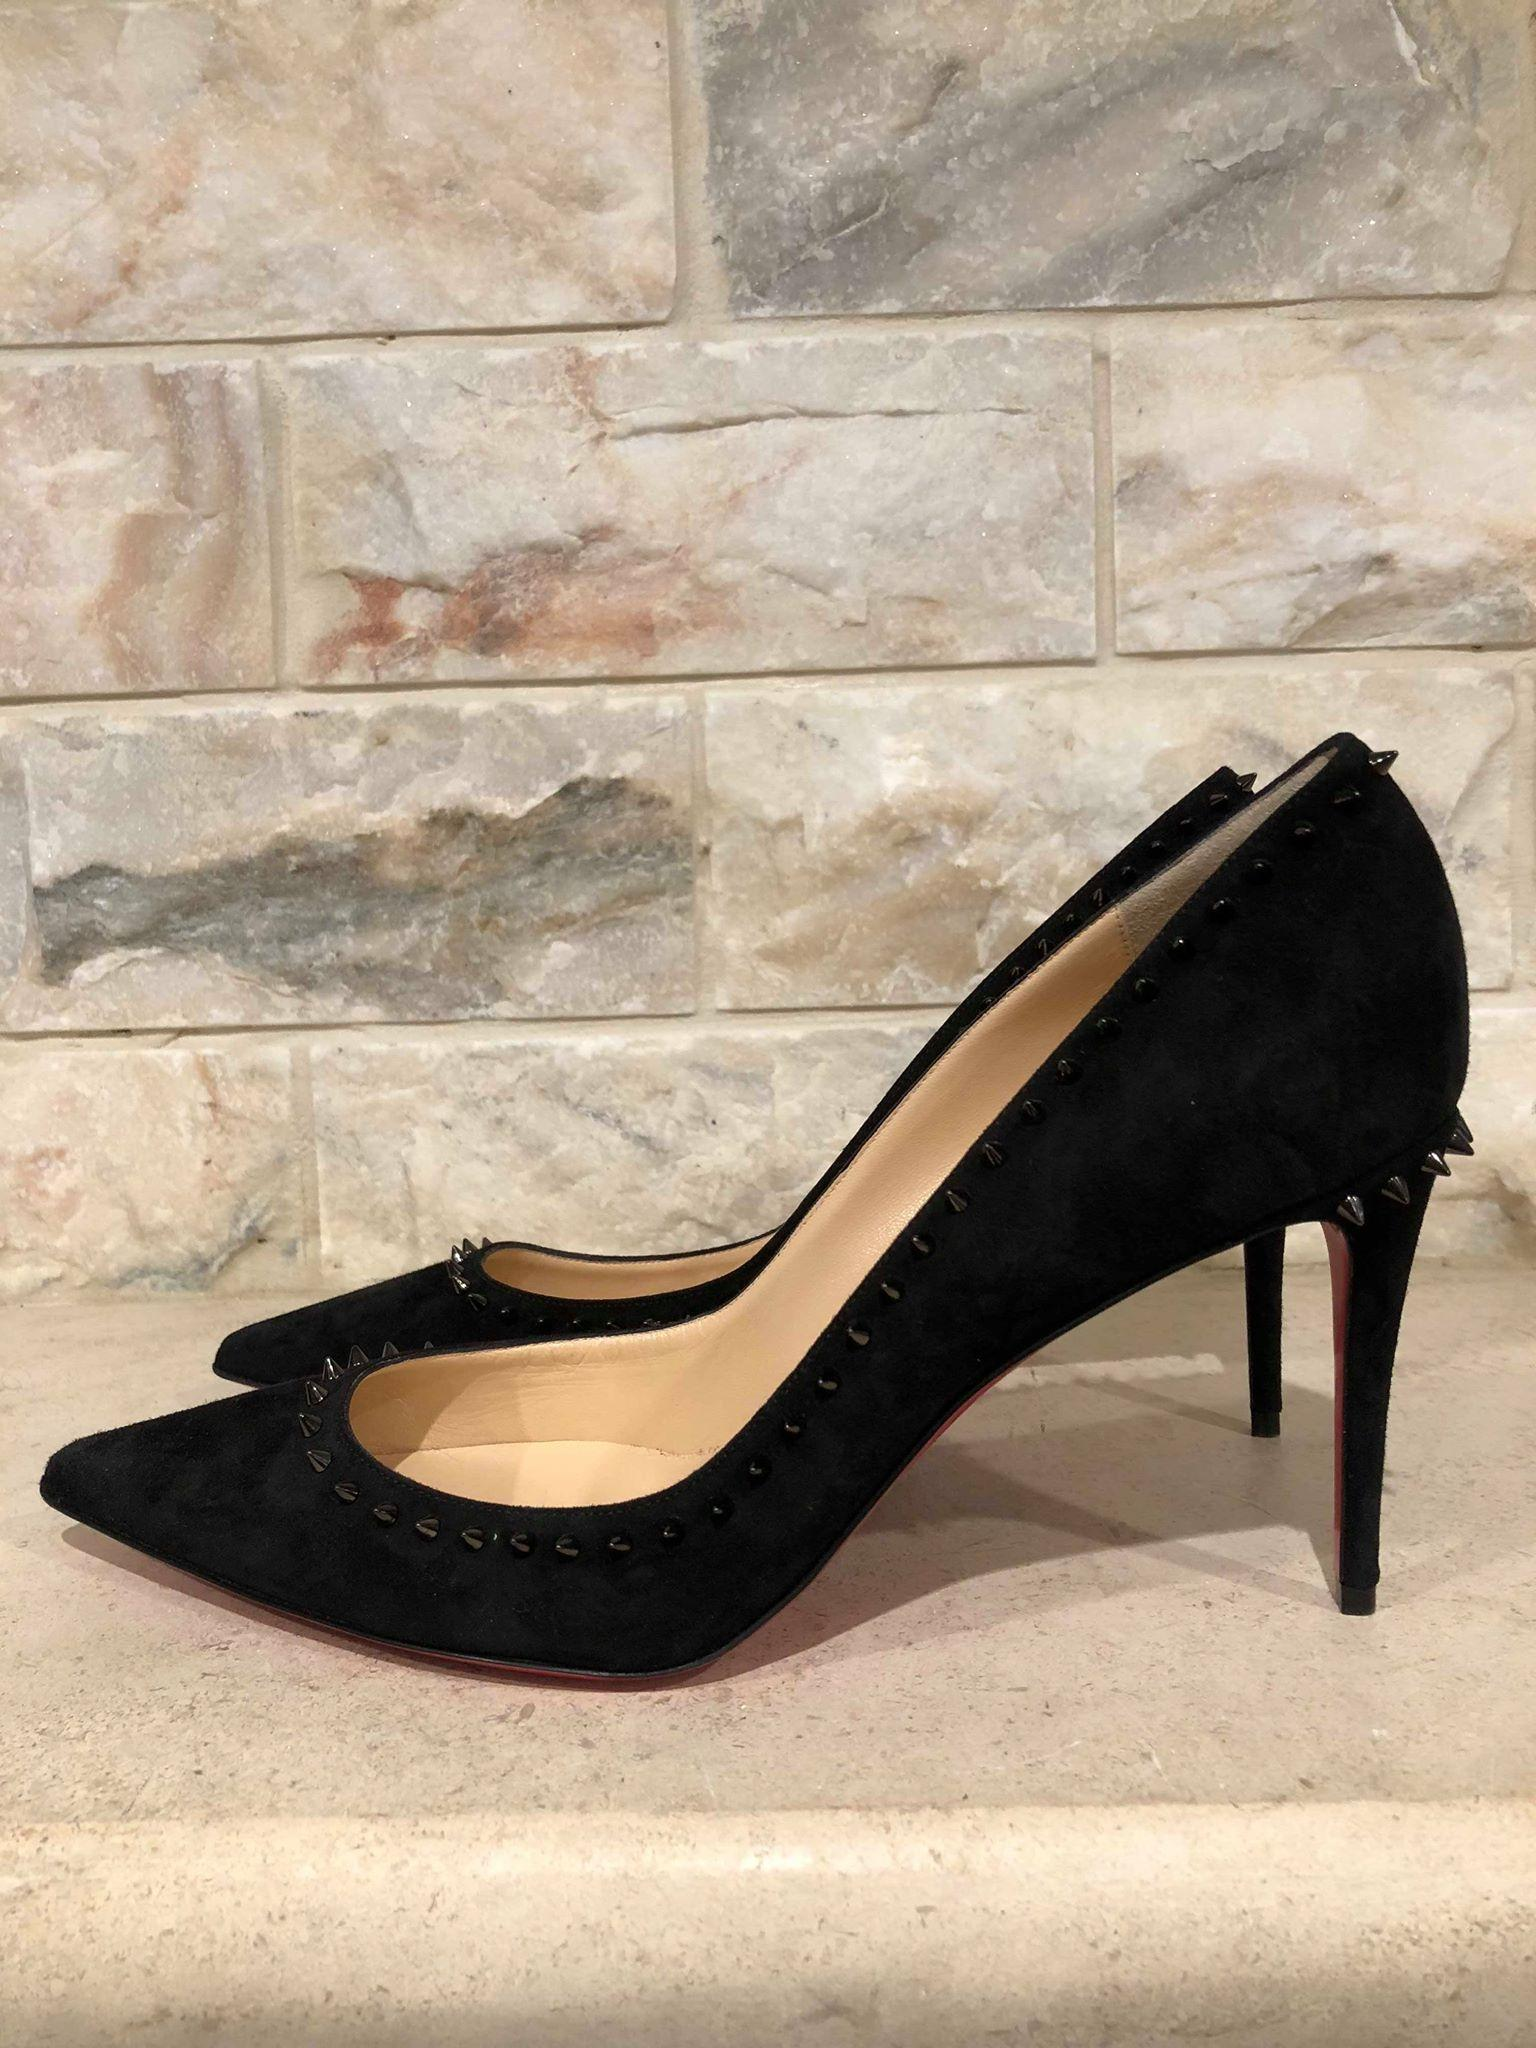 big sale 54445 6d8d5 Christian Louboutin Black Anjalina 85 Suede Spike Pointed ...